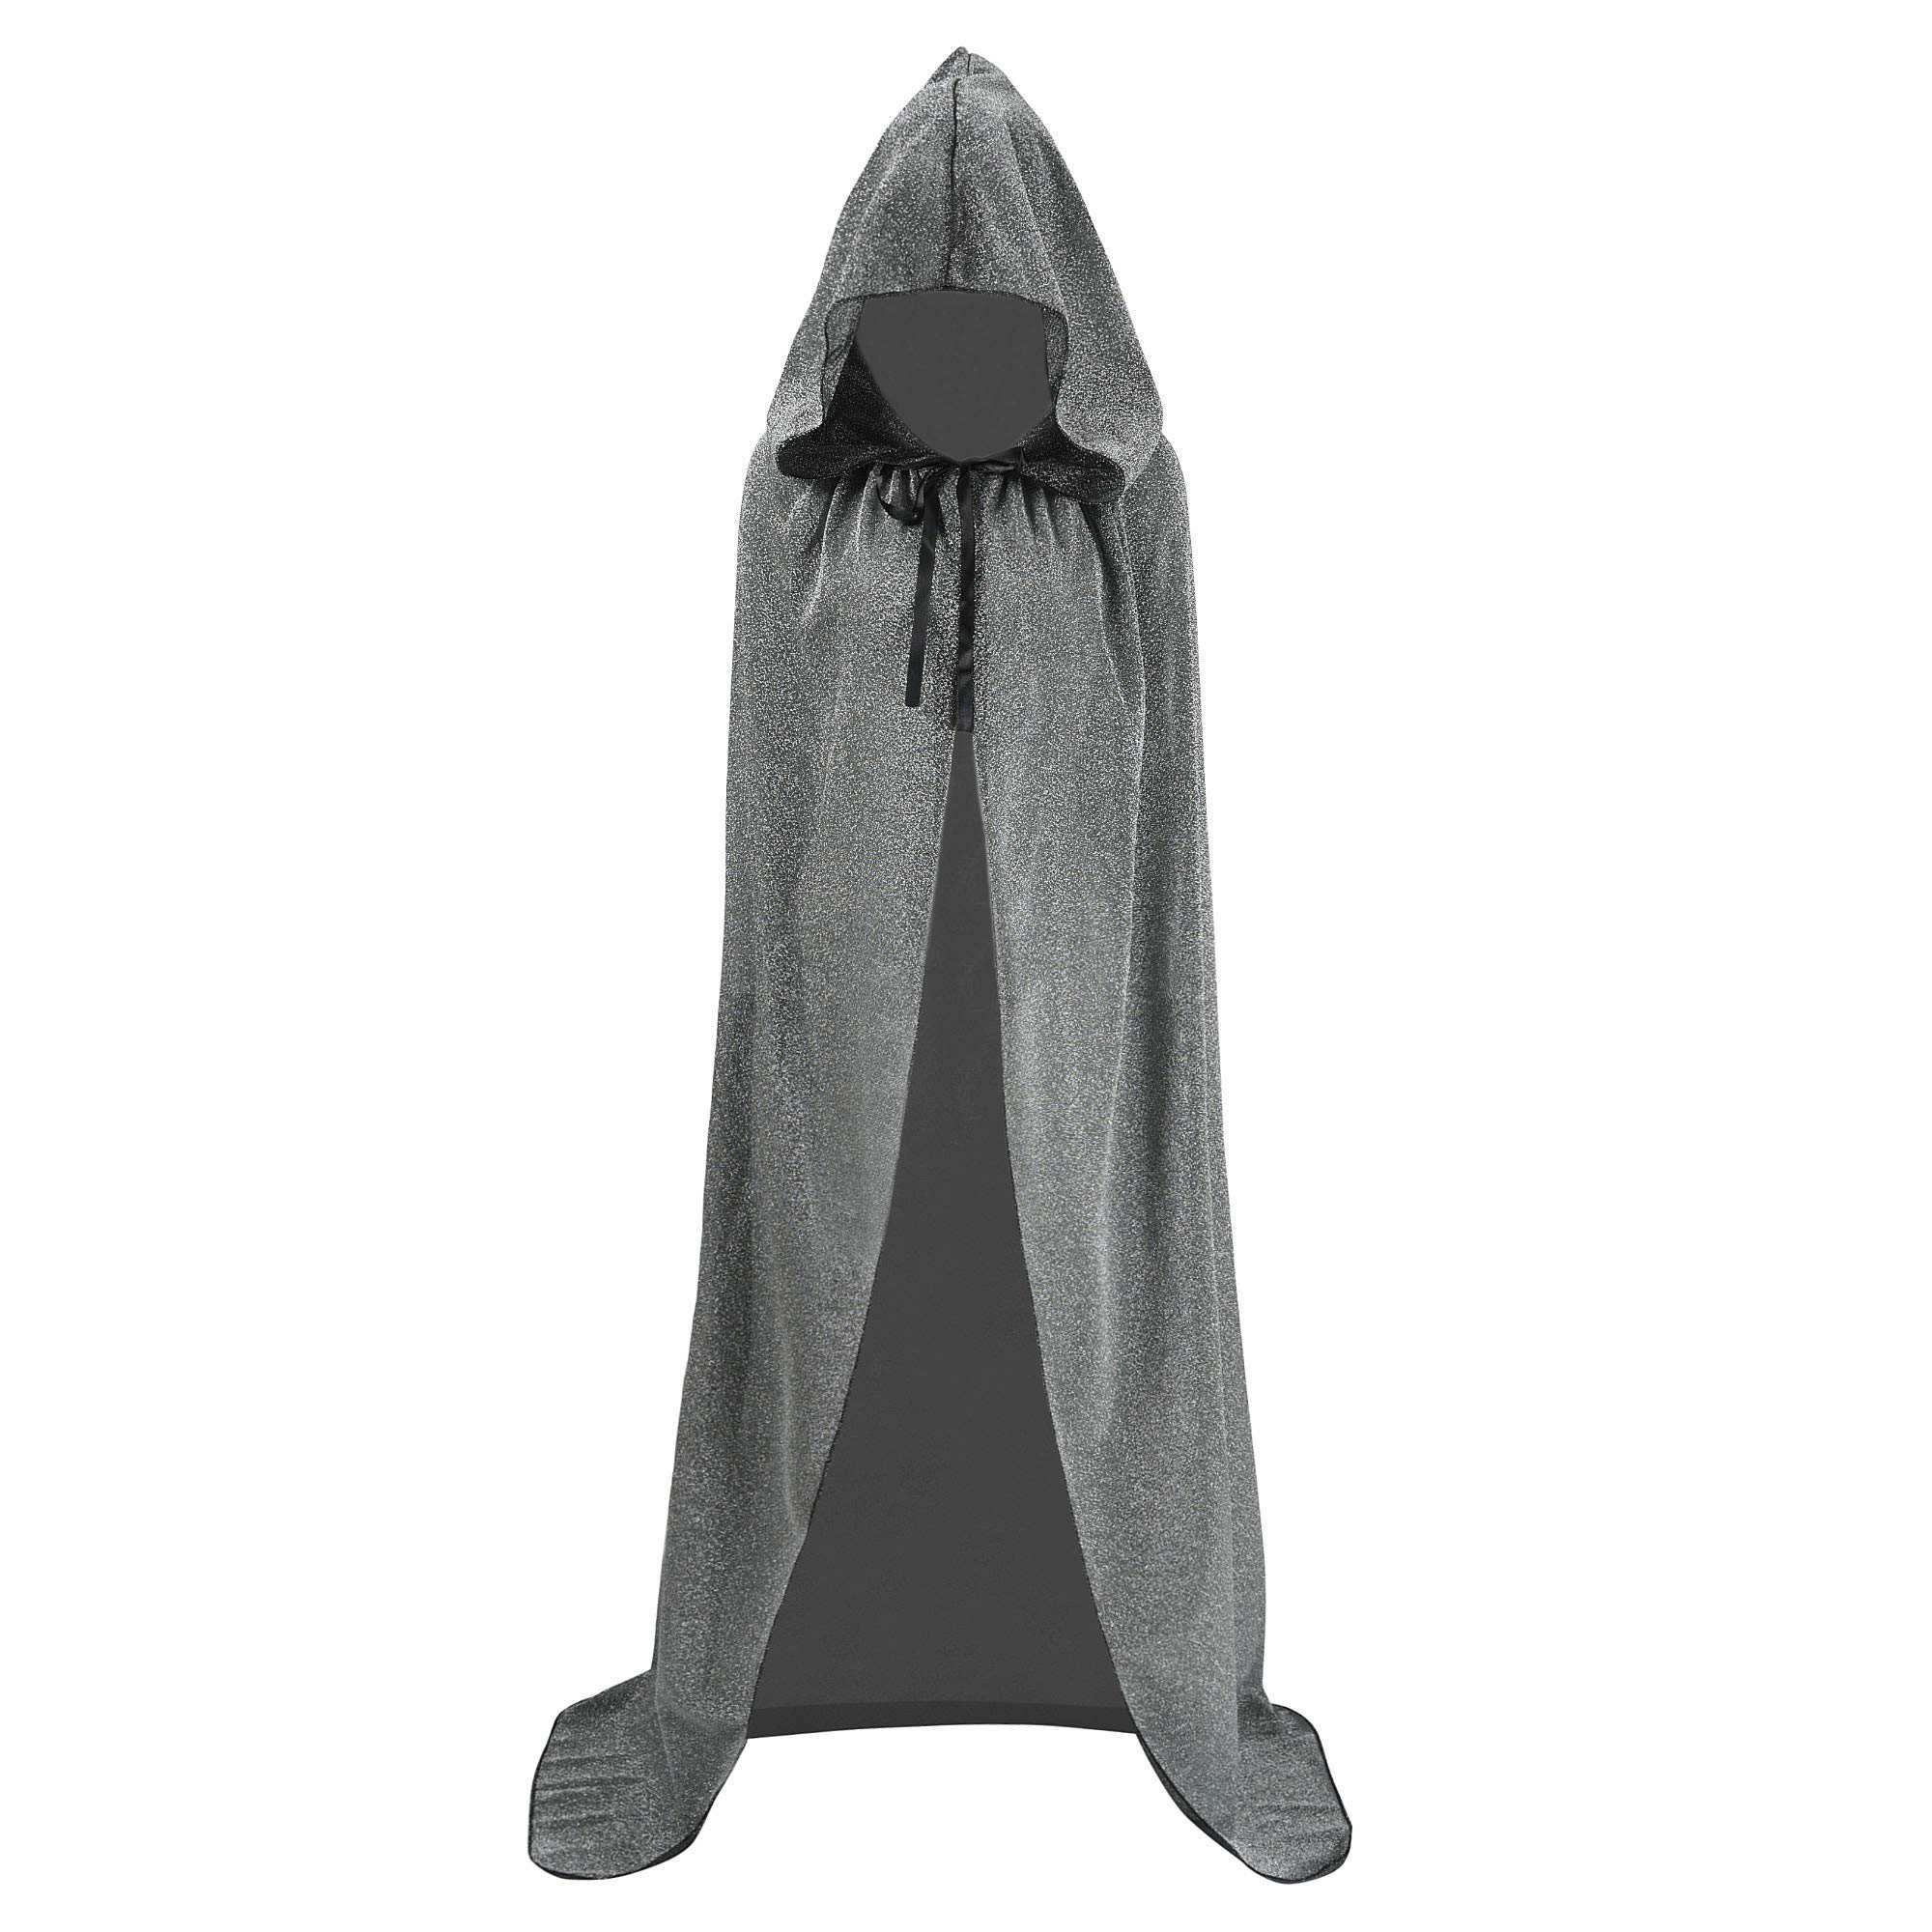 Unisex Halloween Cape Hooded Cloak Cosplay Christmas Party Adult Costume Outerwear (L, Silver)